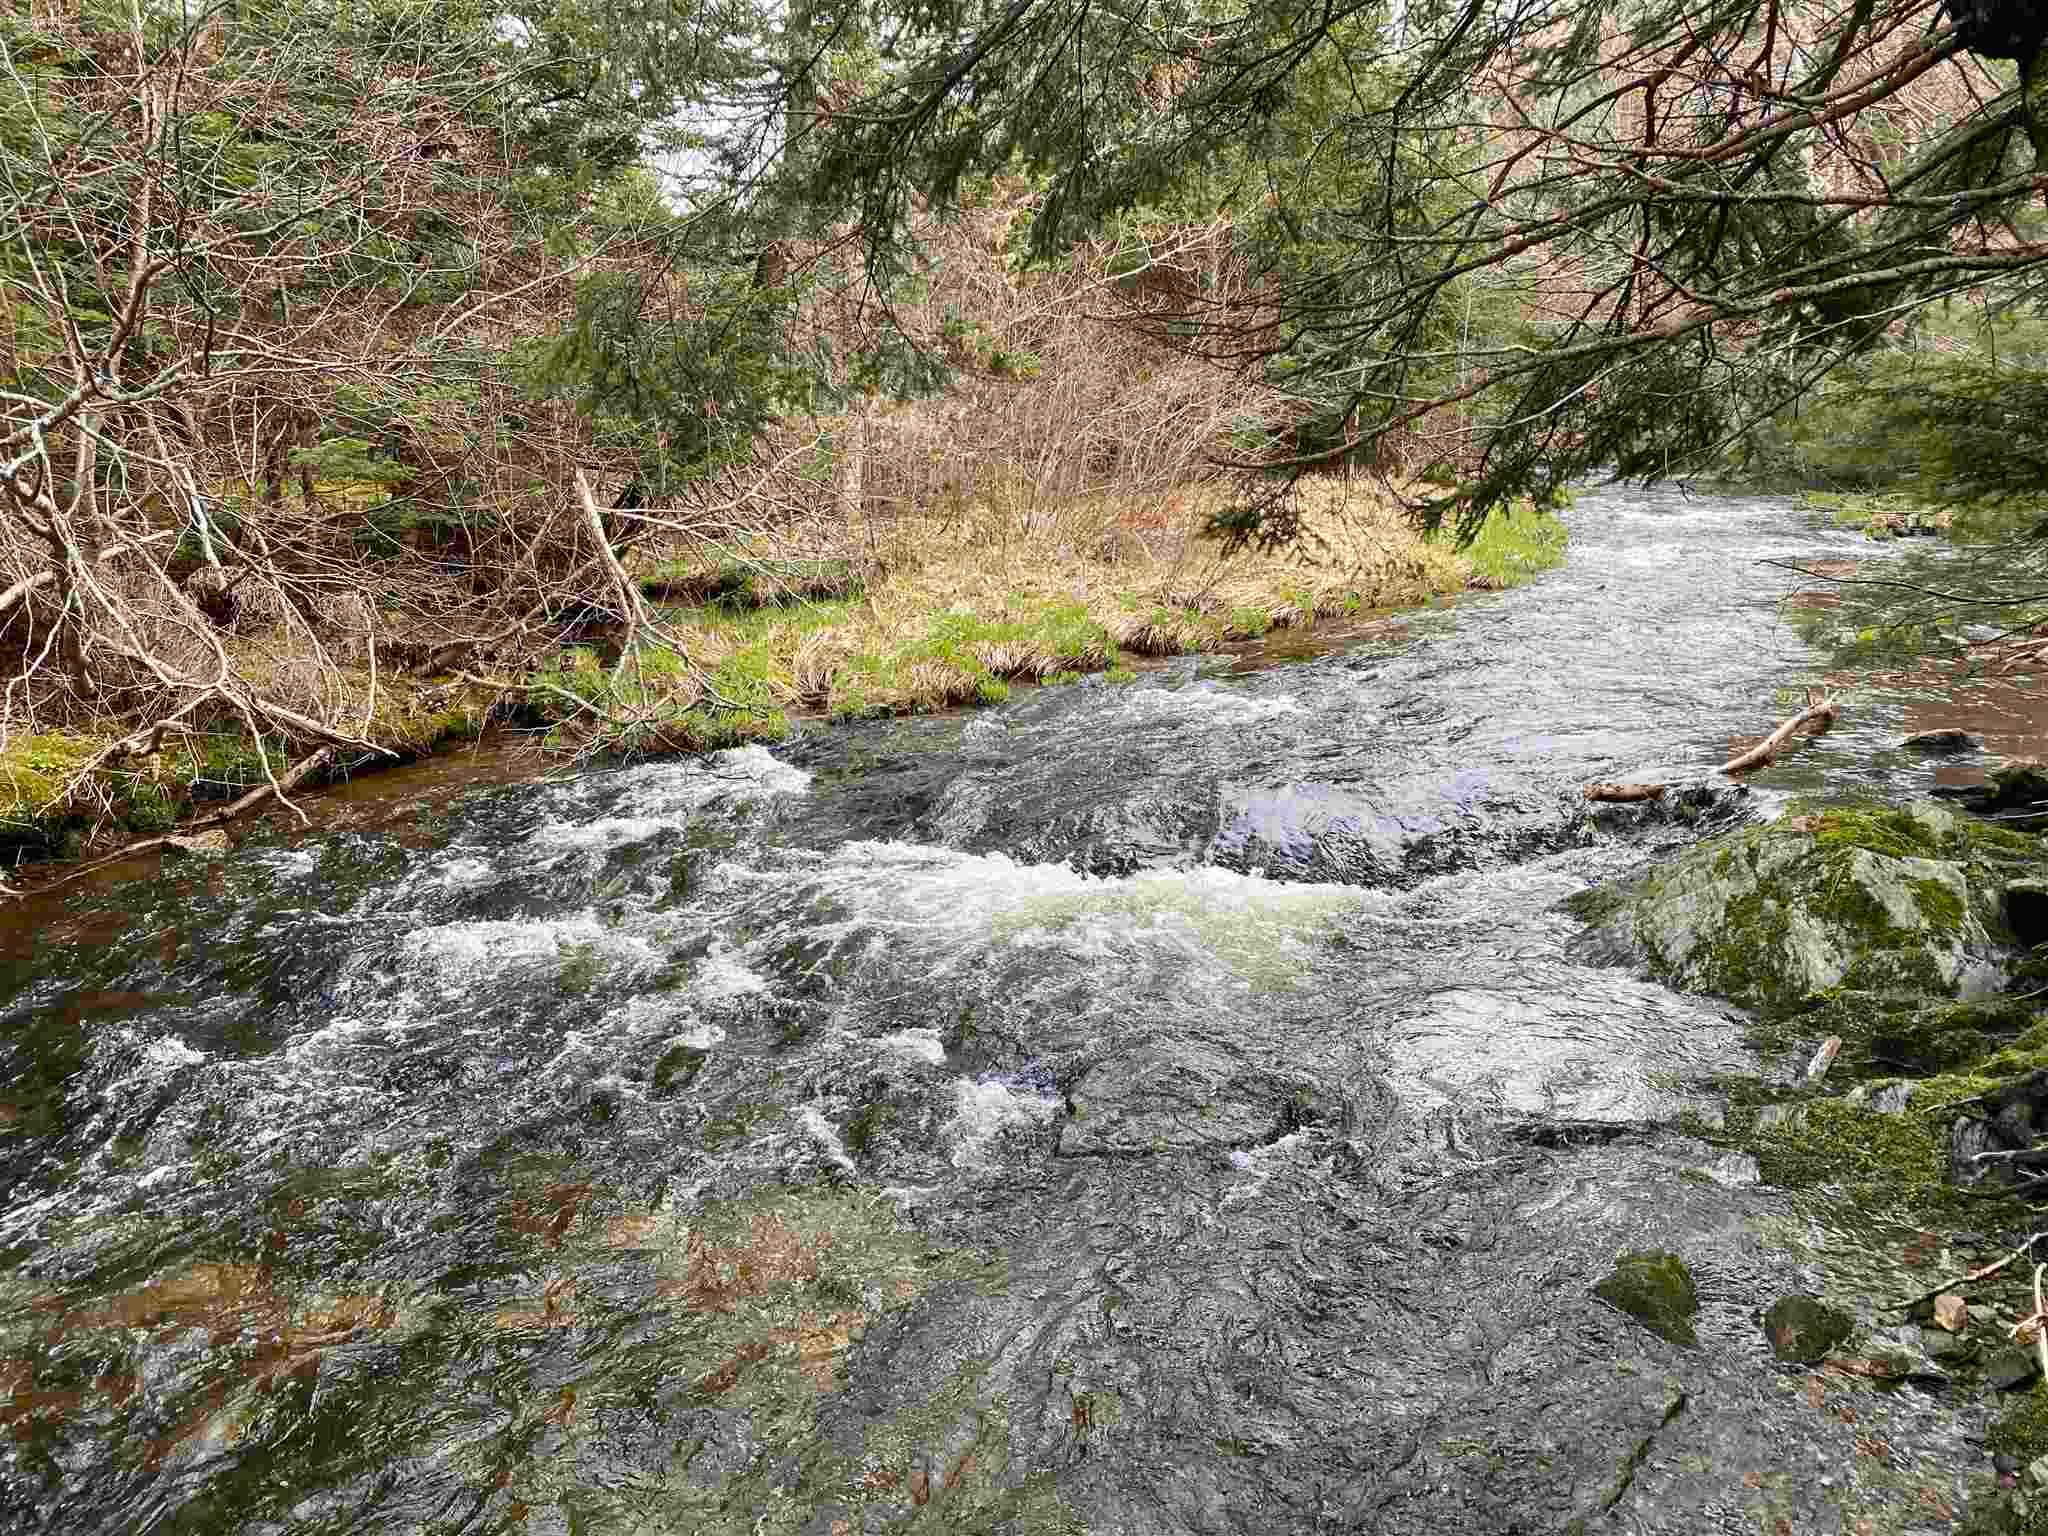 Main Photo: Sherbrooke Road in Greenvale: 108-Rural Pictou County Vacant Land for sale (Northern Region)  : MLS®# 202111683